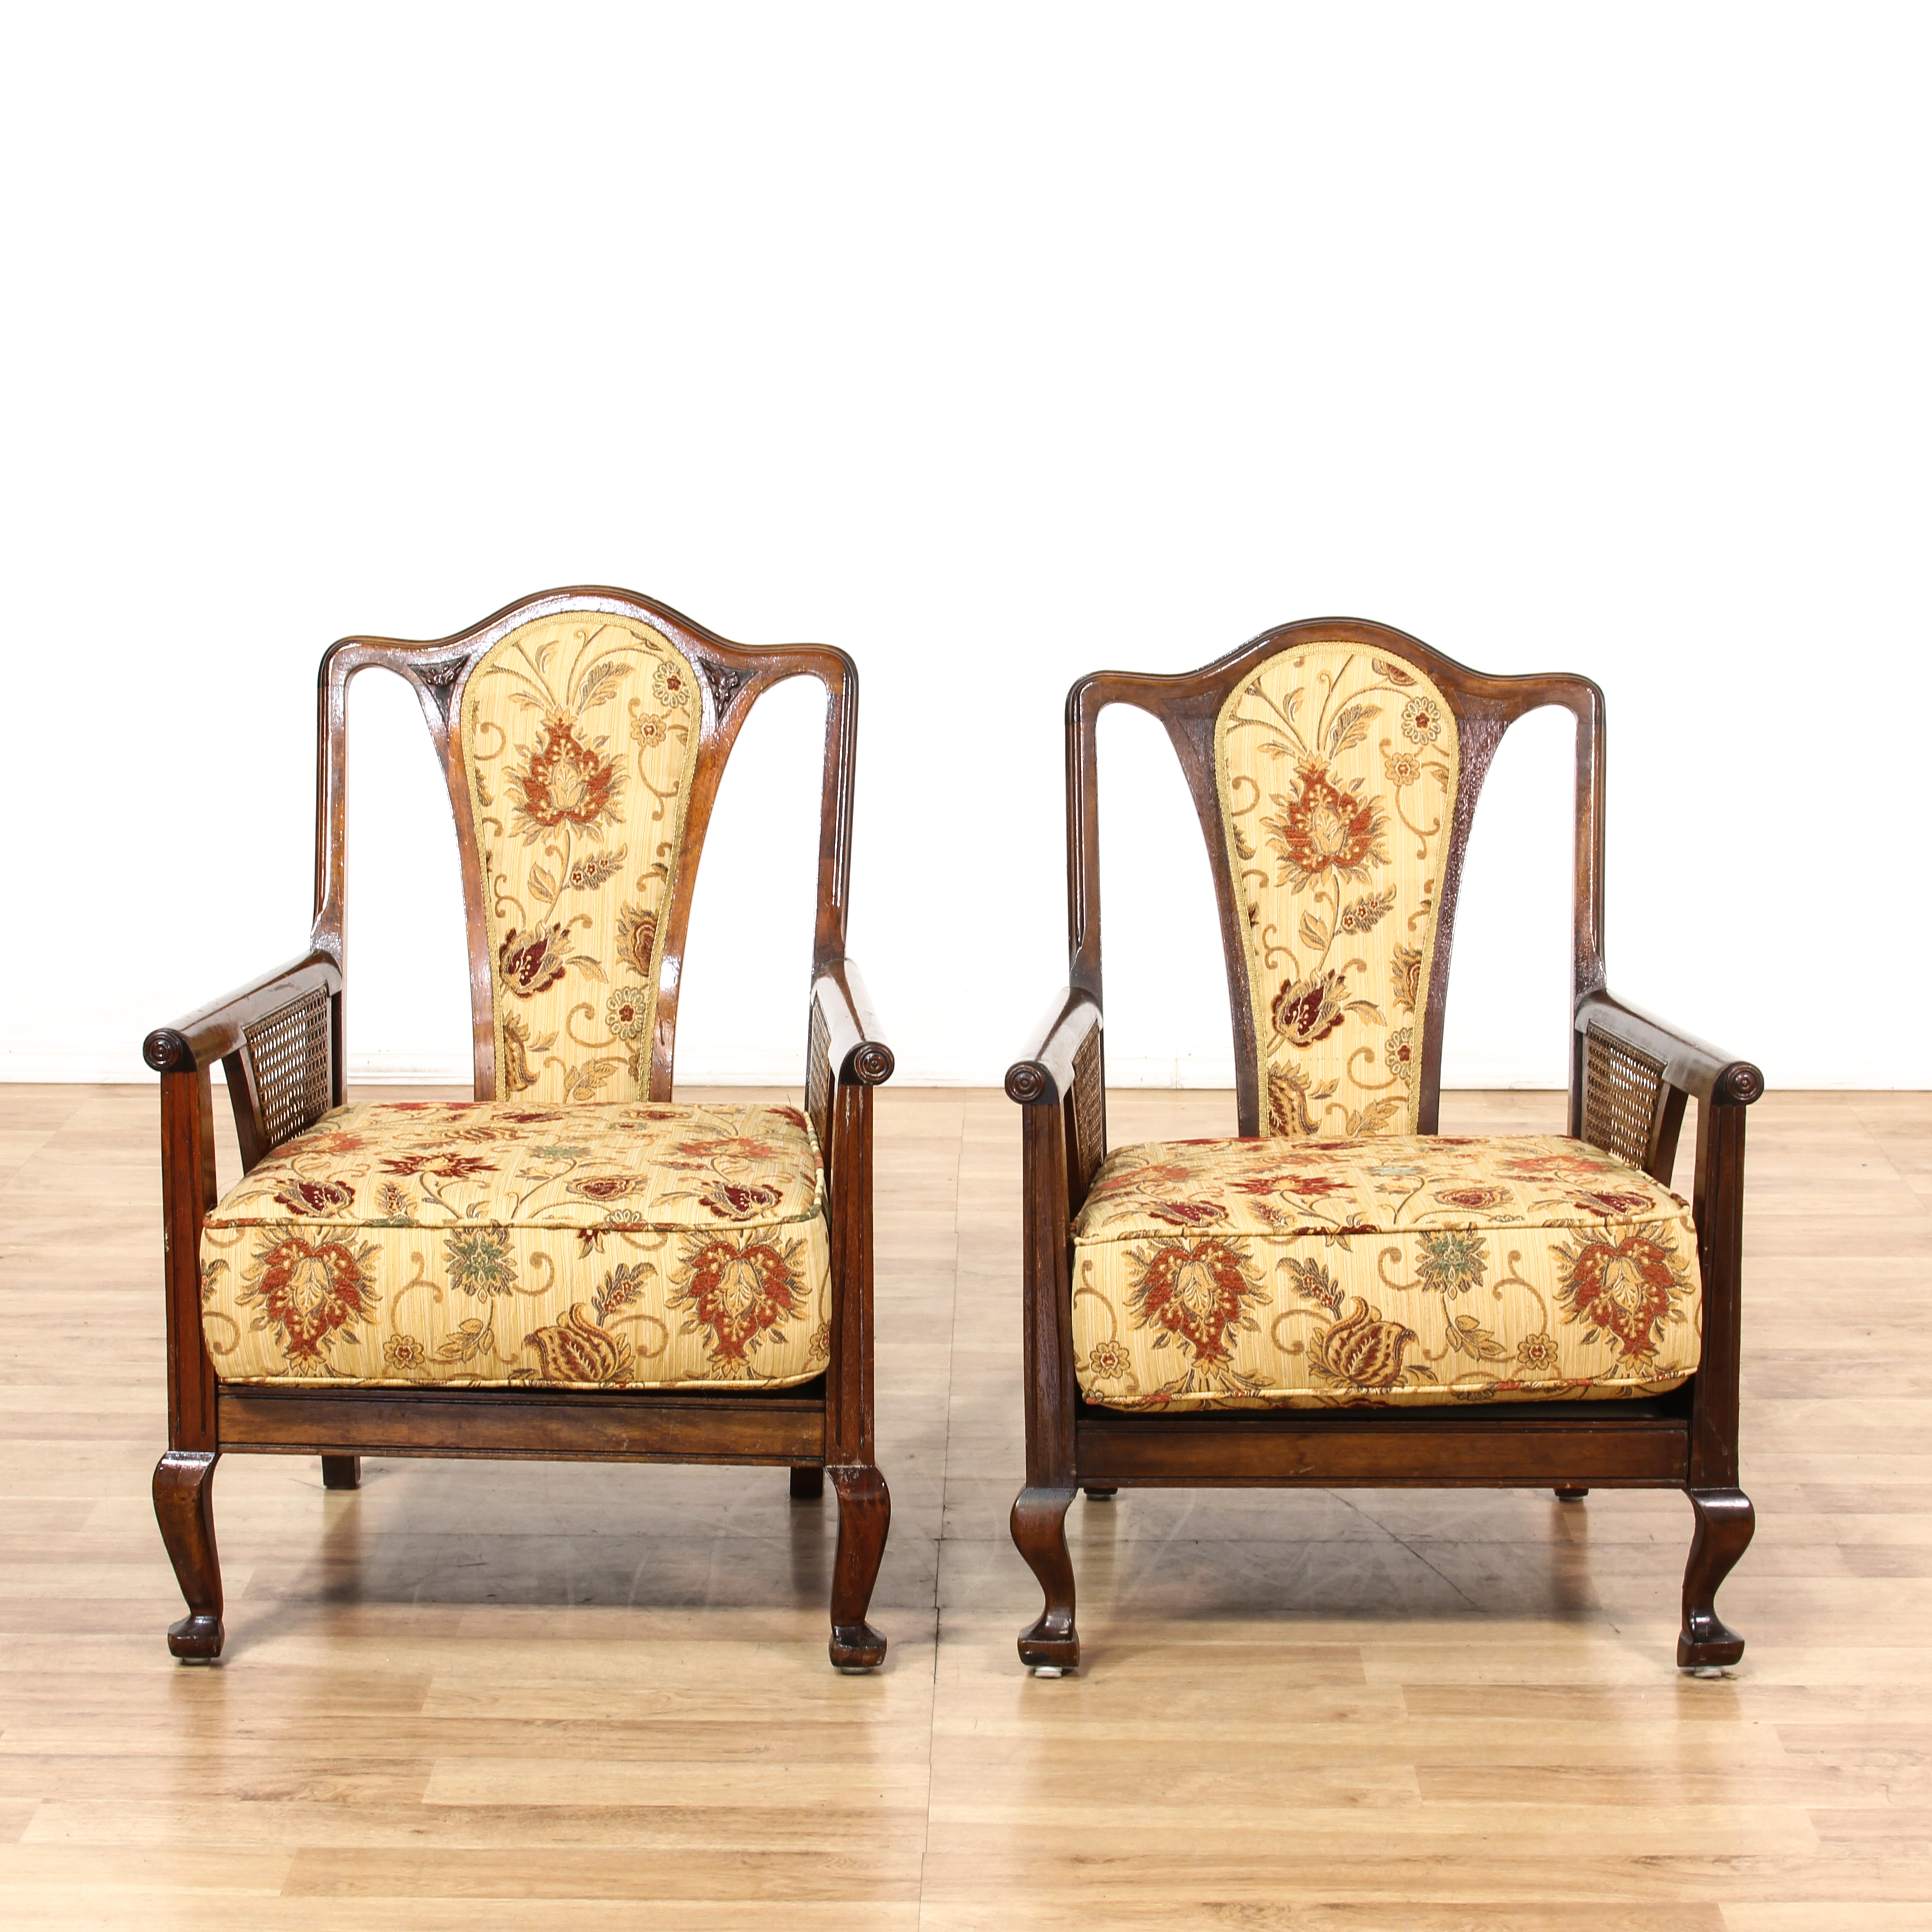 floral upholstered chair office knobs pair mahogany cane arm chairs